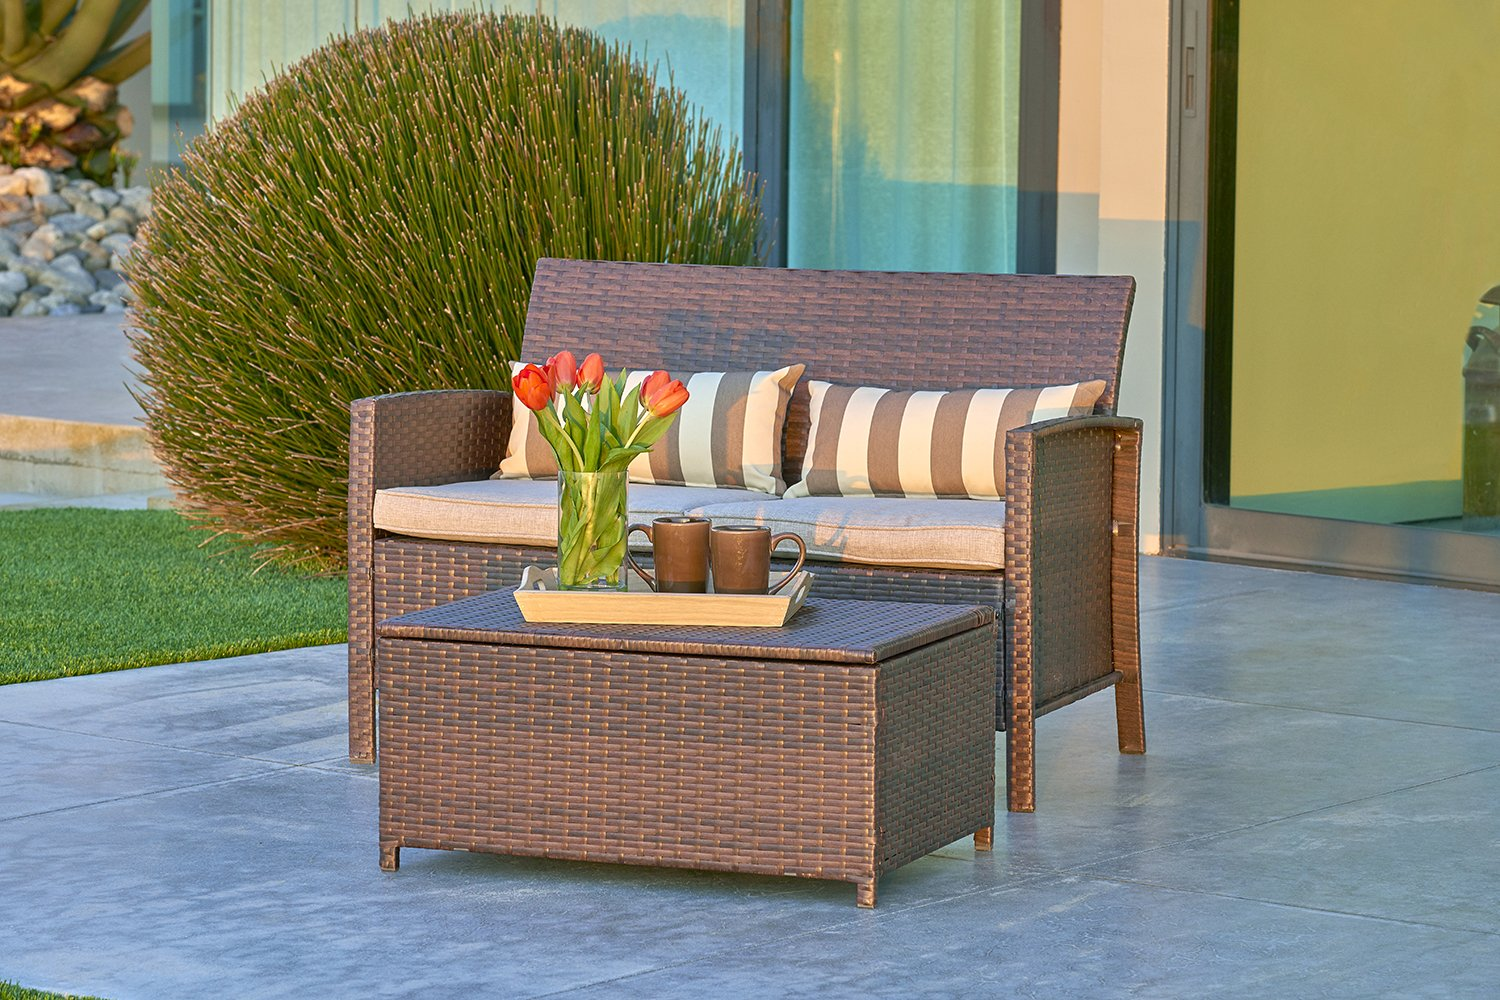 SOLVISTA Outdoor 2-Piece Loveseat with Coffee Table Built-In Storage Bin, All Weather Brown Wicker with Light Brown Waterproof Cushions & Classic Gold Stripe Throw Pillows | Patio, Backyard, by Solvista